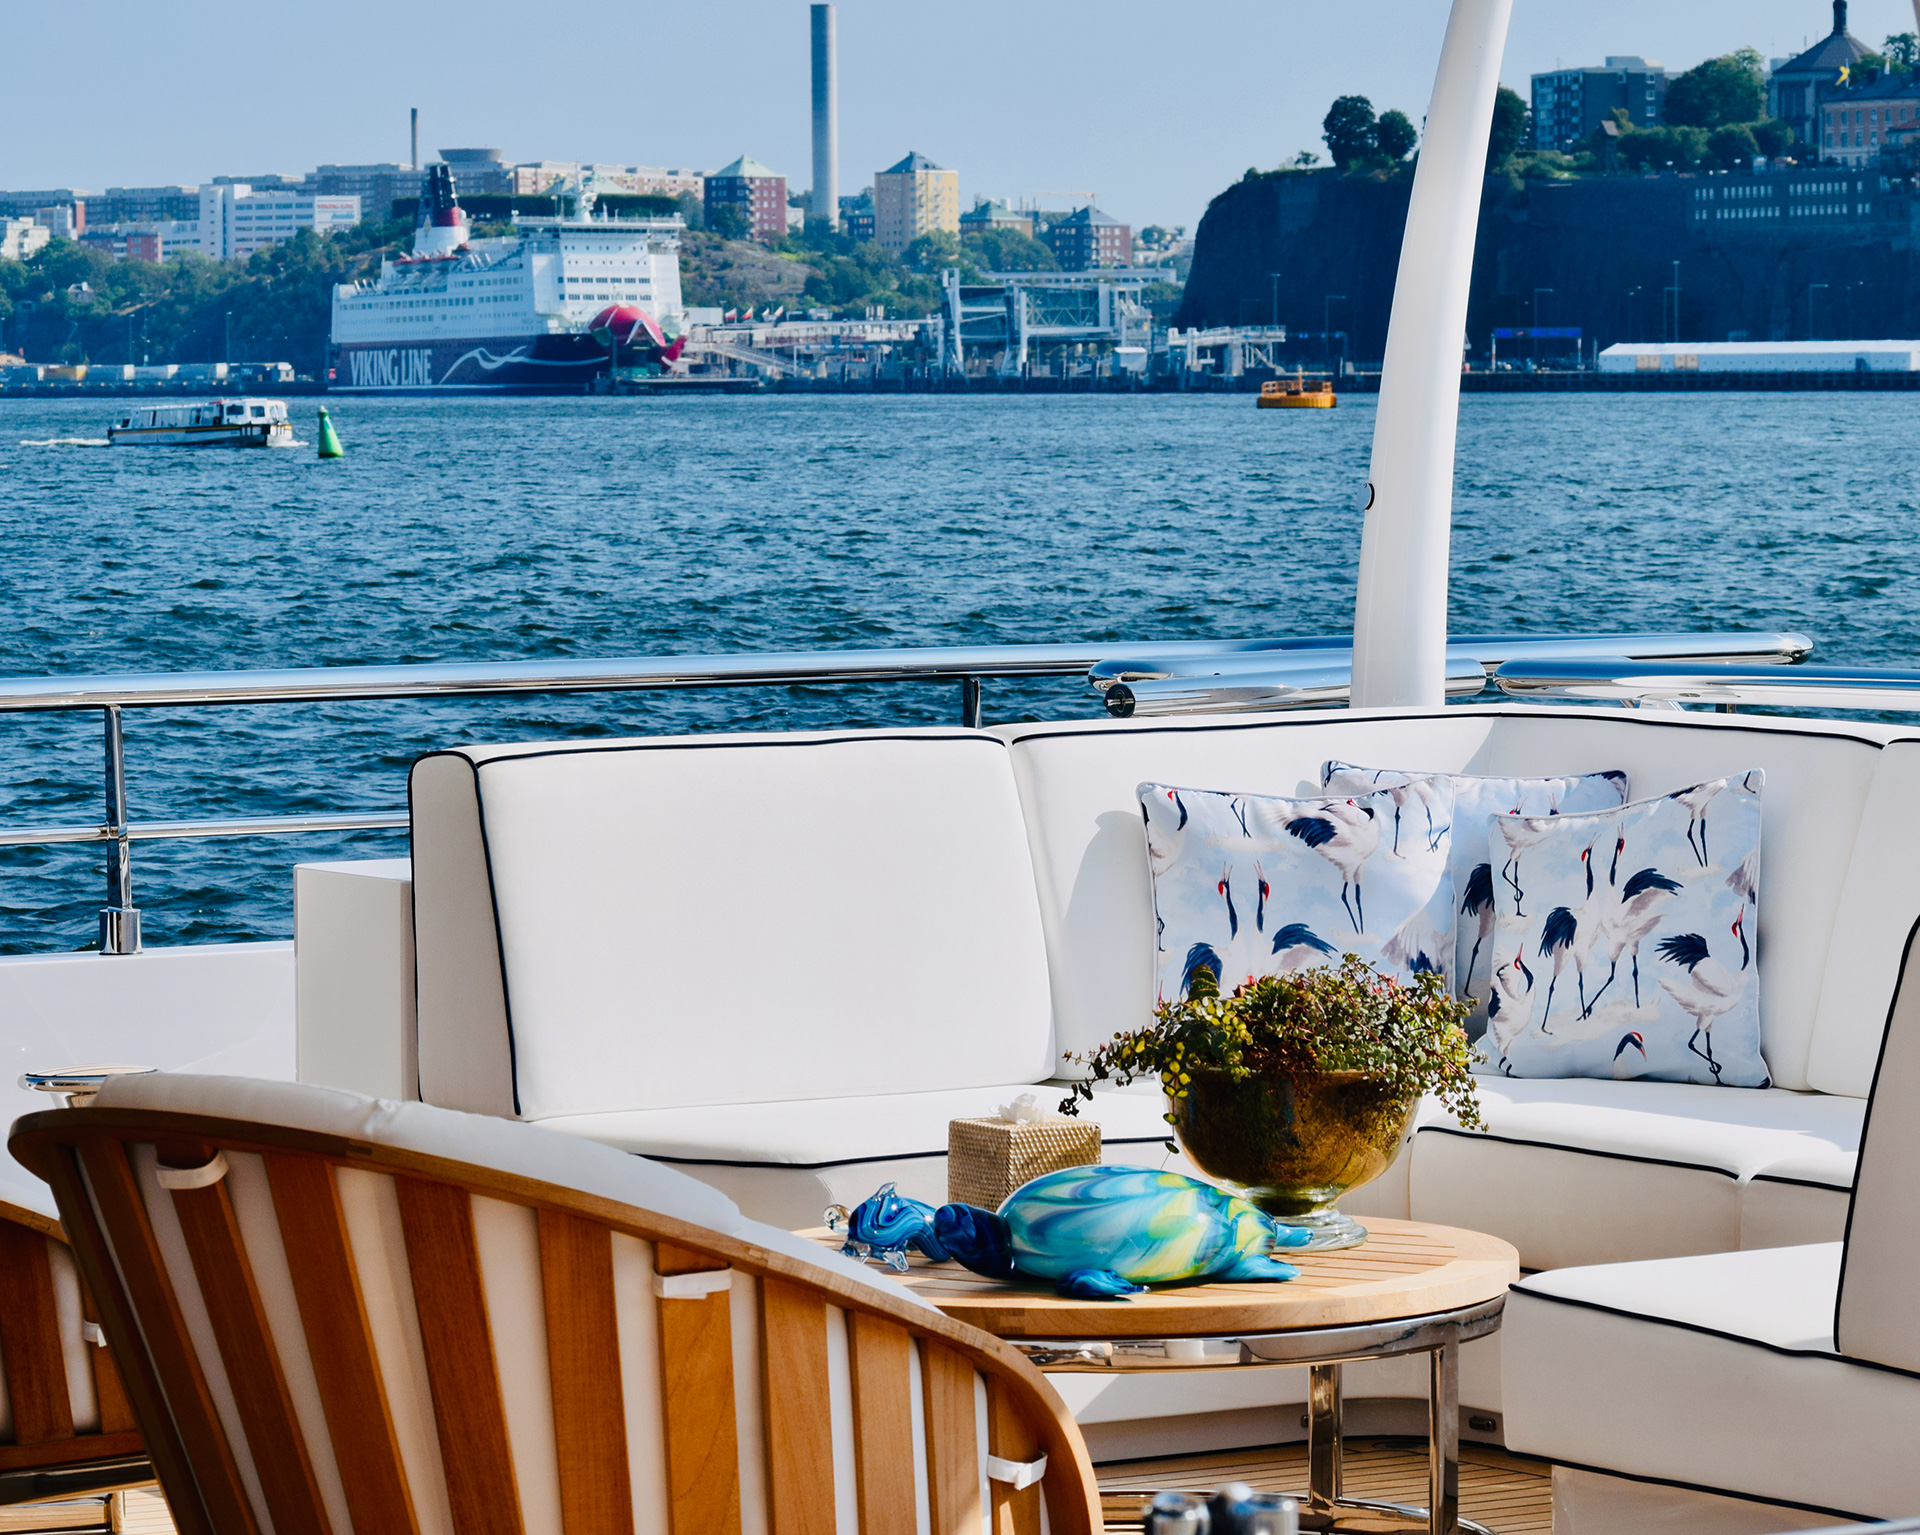 An inviting setting on the upper deck of a well-appointed yacht | Helsinki | Finland| STIRworld